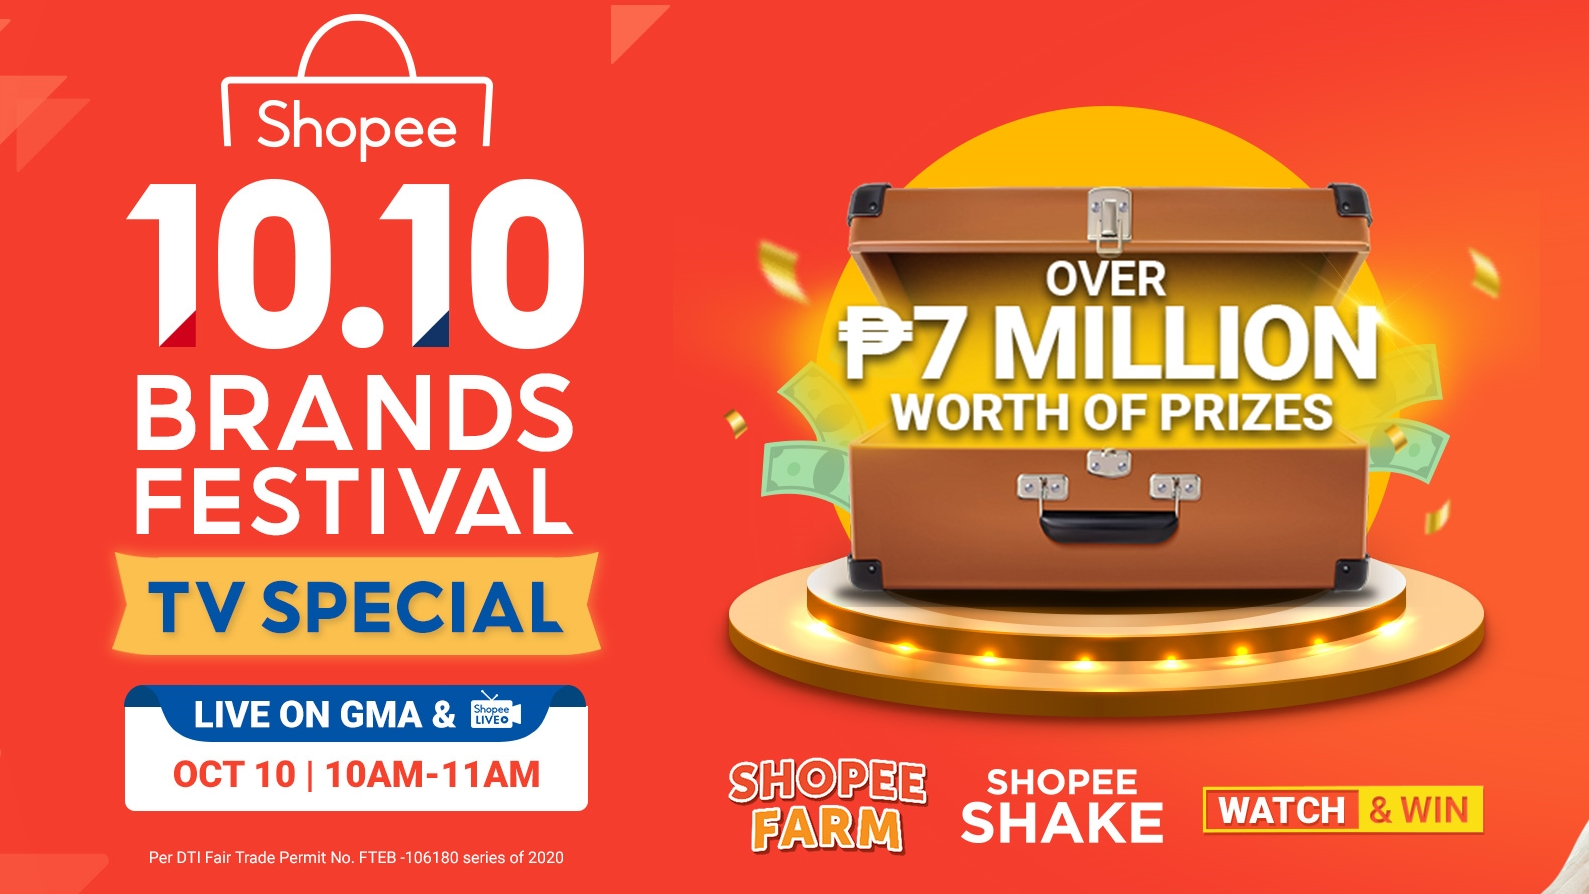 Shopee Continues Support For Brands with the 10.10 Brands Festival